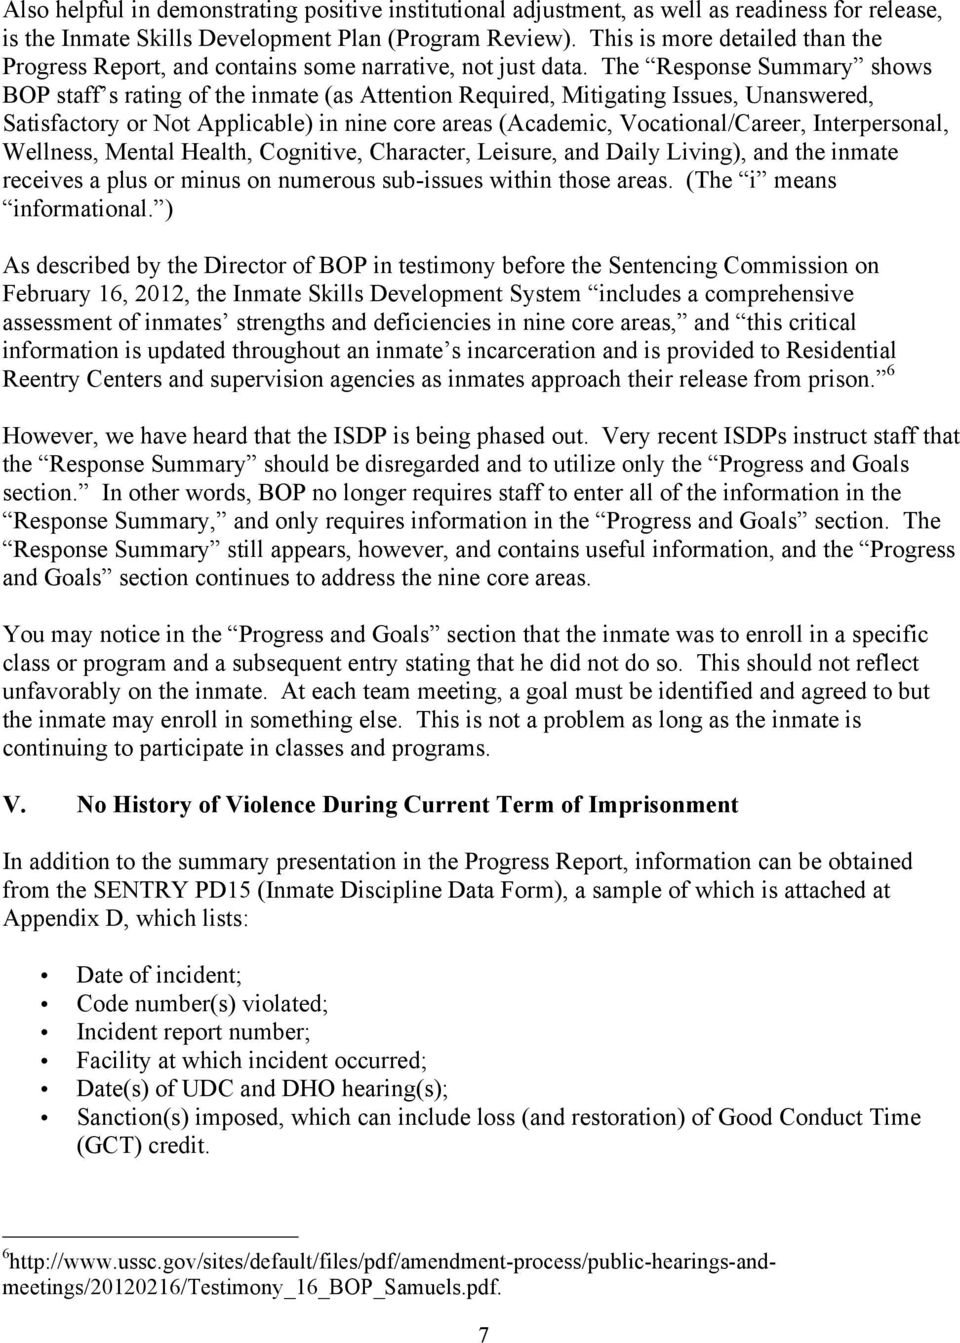 The BOP consent form, which you will have the client sign and return